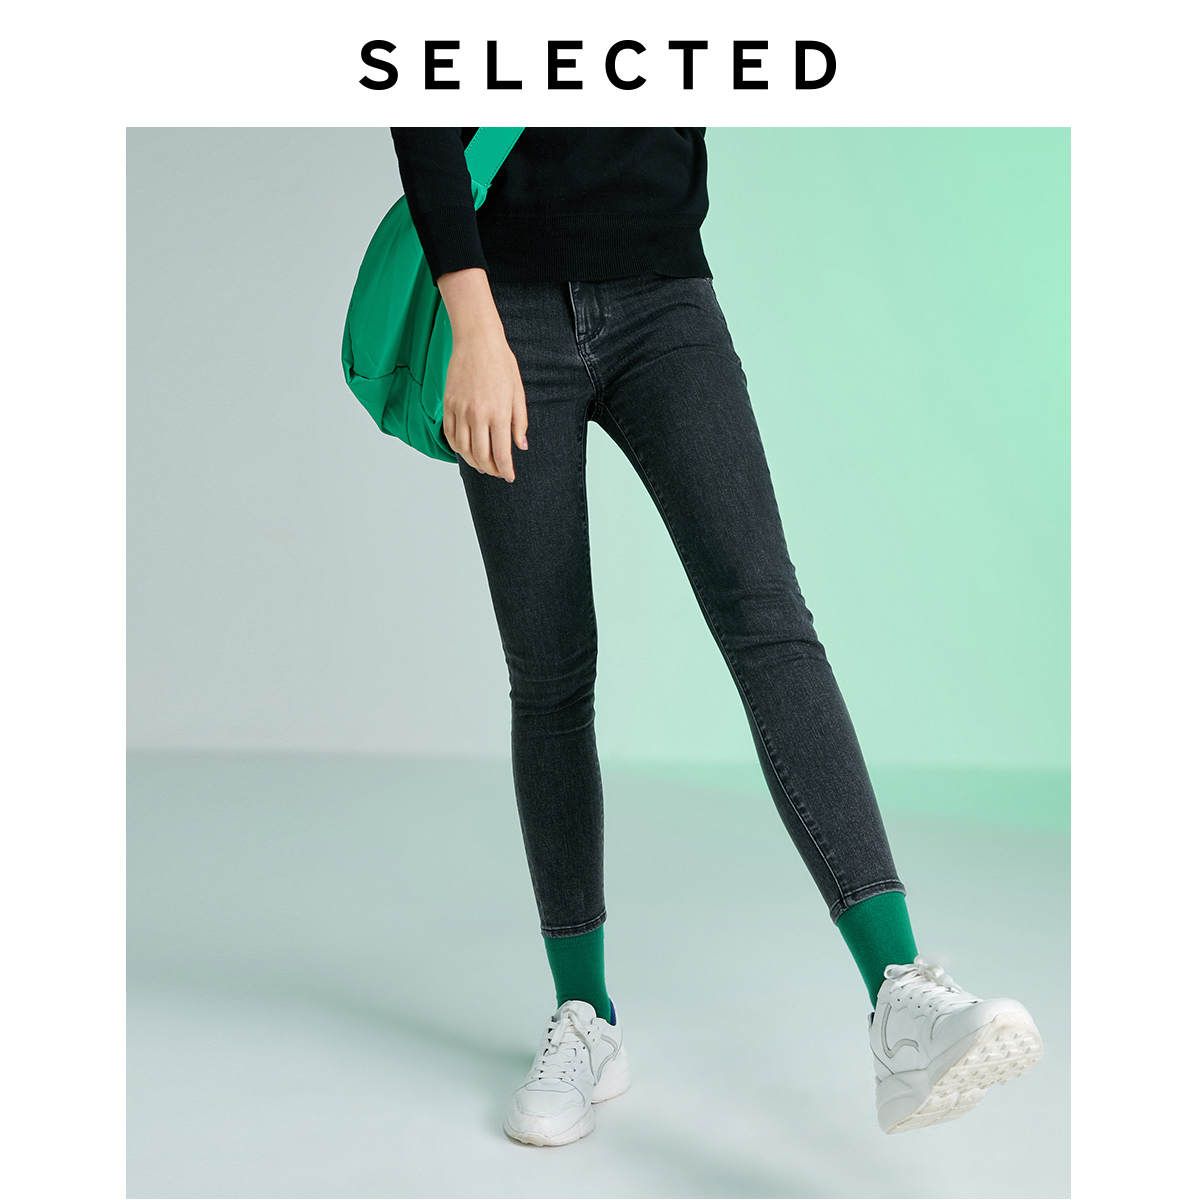 SELECTED Women's Stretch Cotton Dark Grey Skinny Jeans Lab|419432501